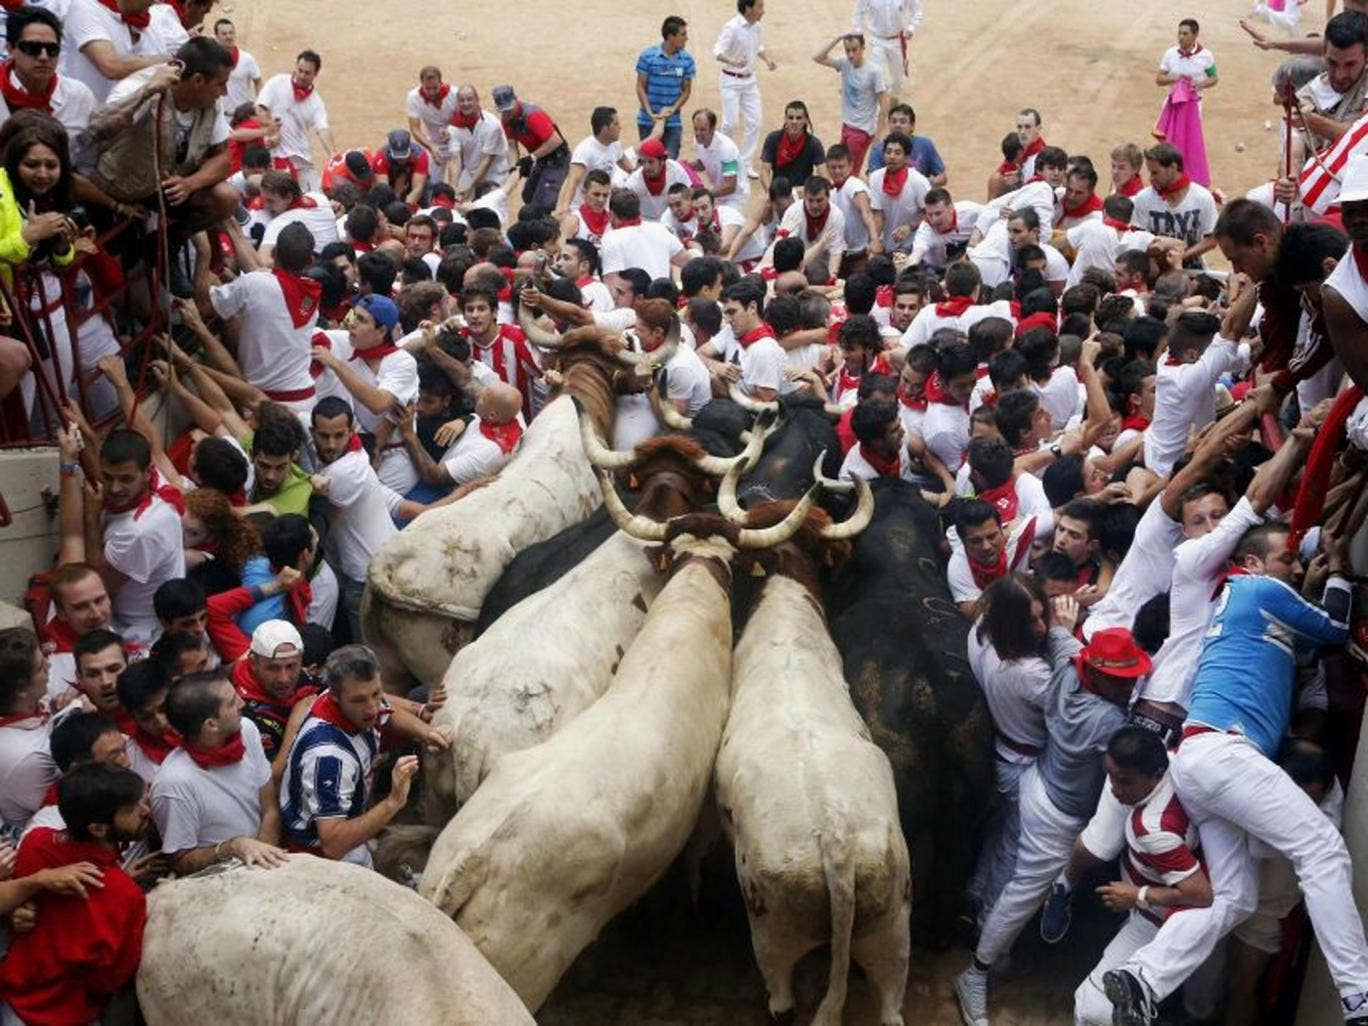 Runners get trapped with Fuente Ymbro fighting bulls at the entrance to the bull ring